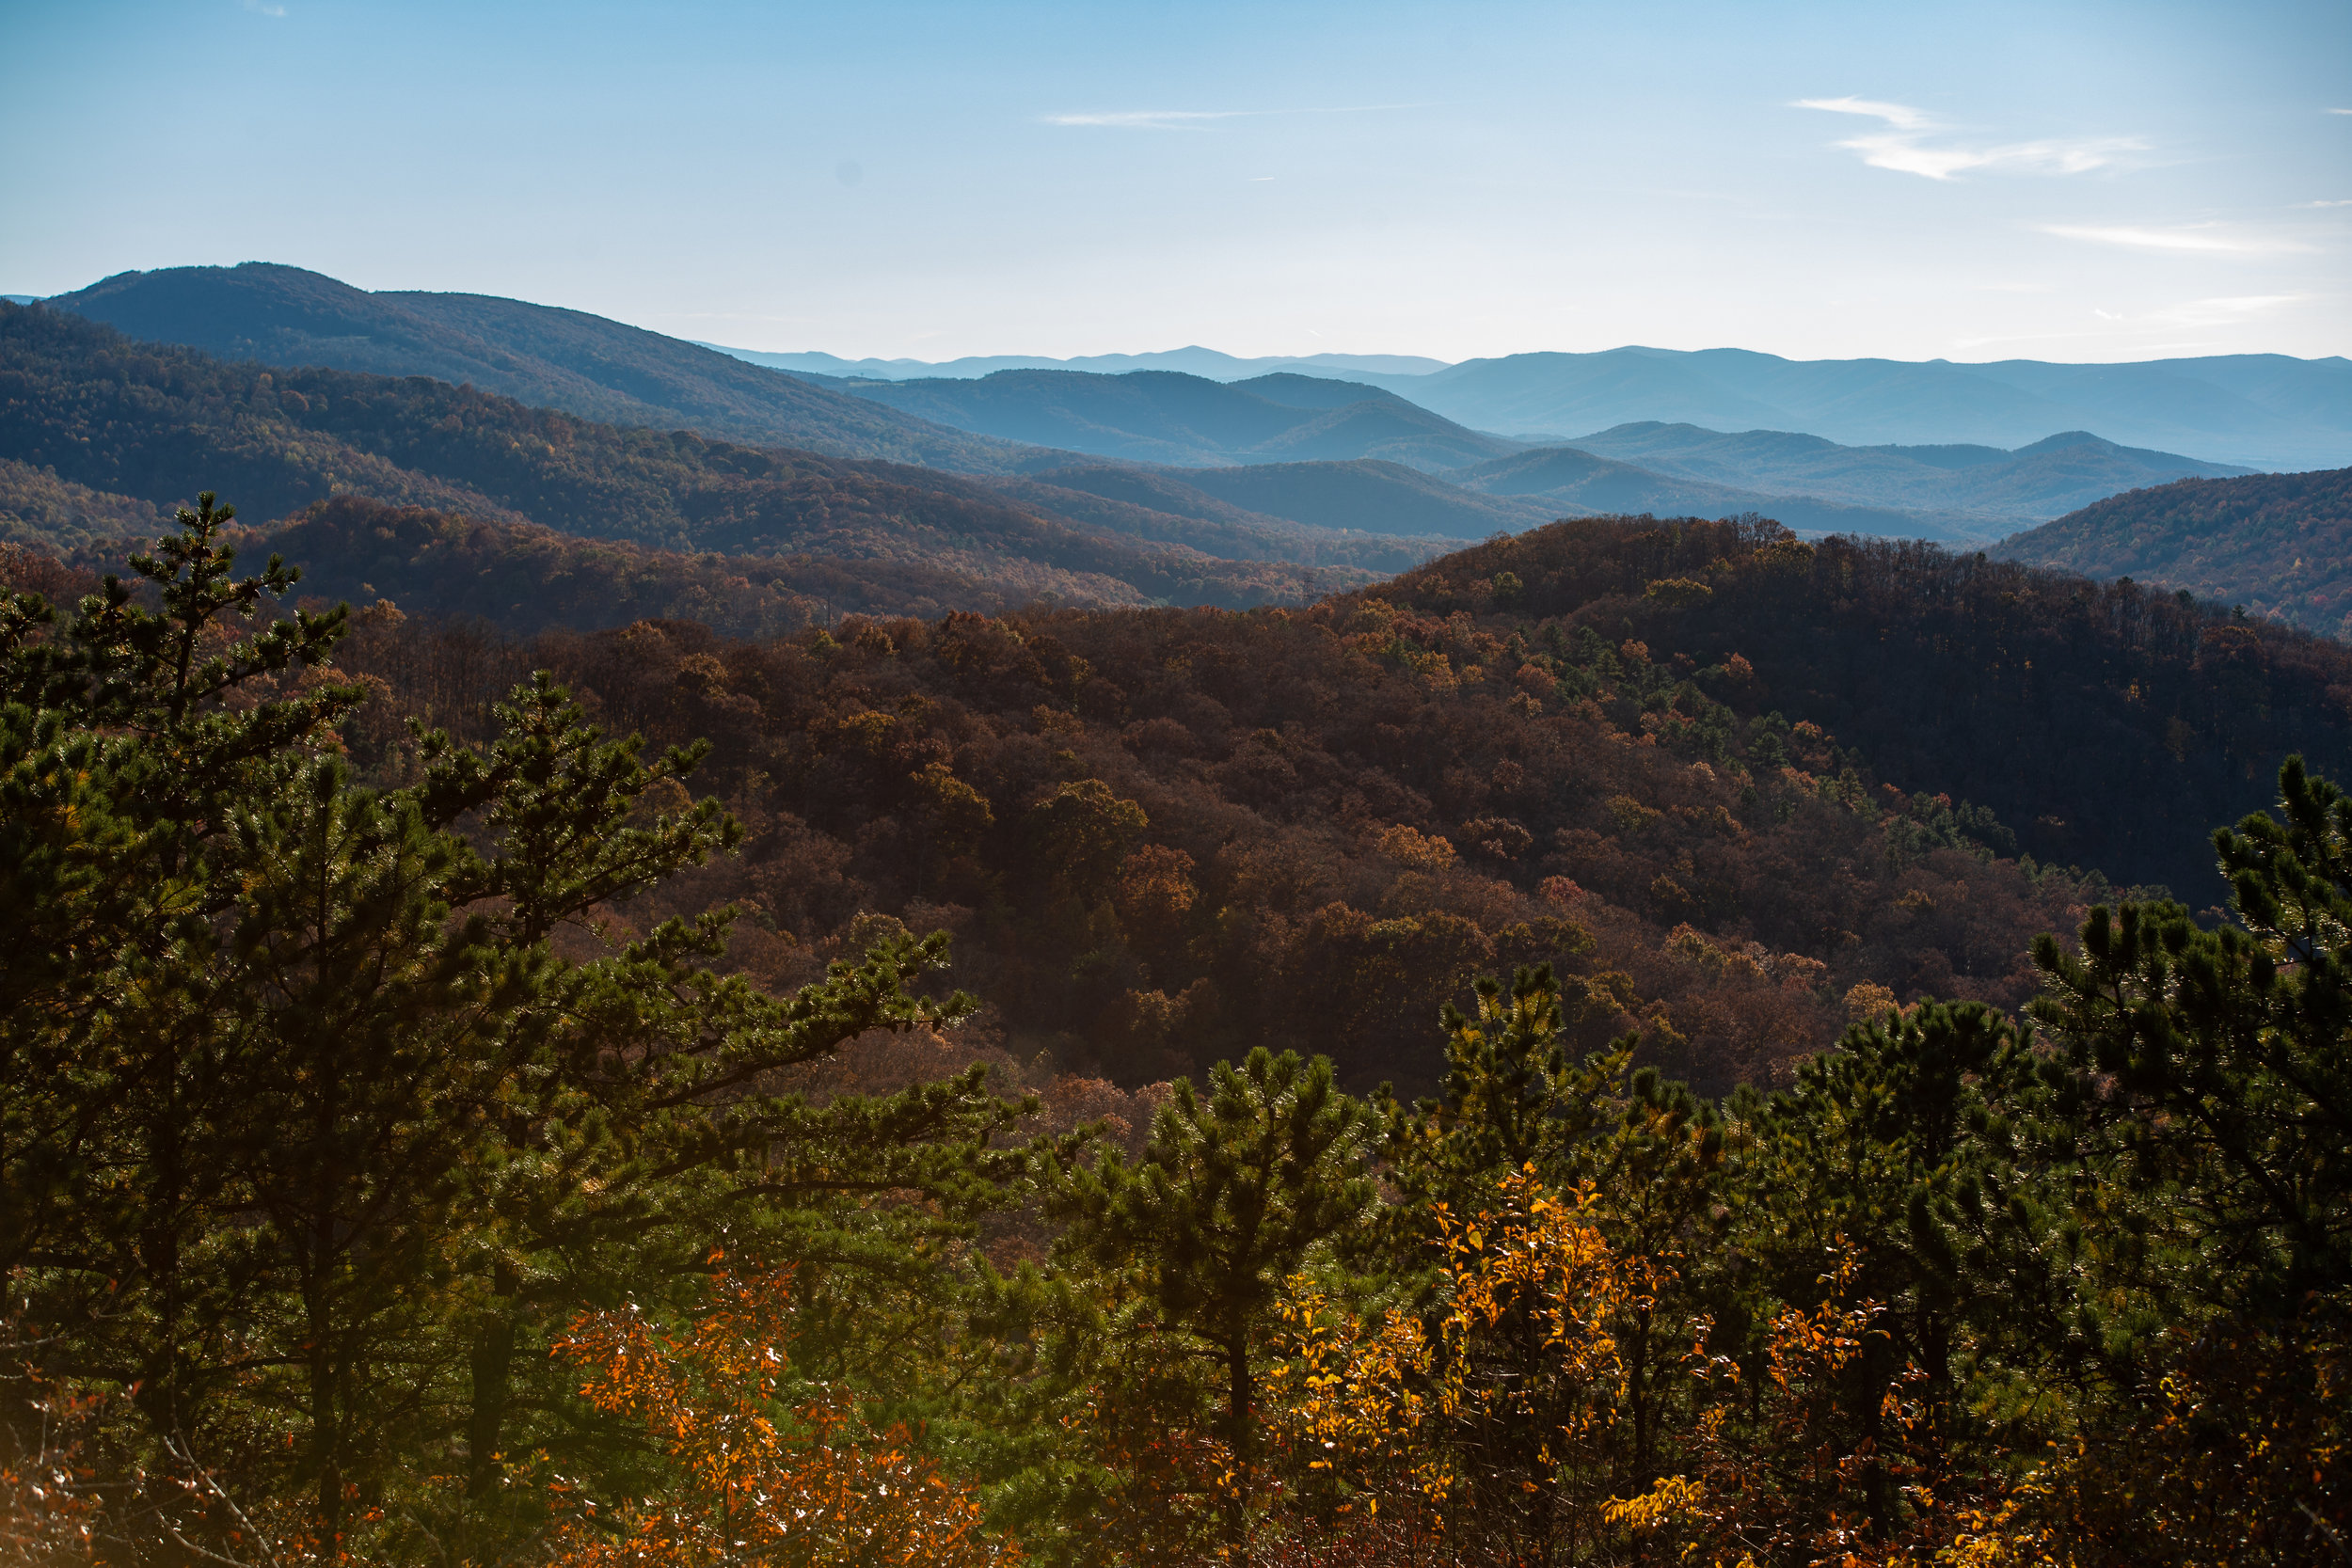 Shenandoah-National-Park-blue-ridge-parkway-day-mountains-afternoon-haze-layers-distance-texture-trees-fall